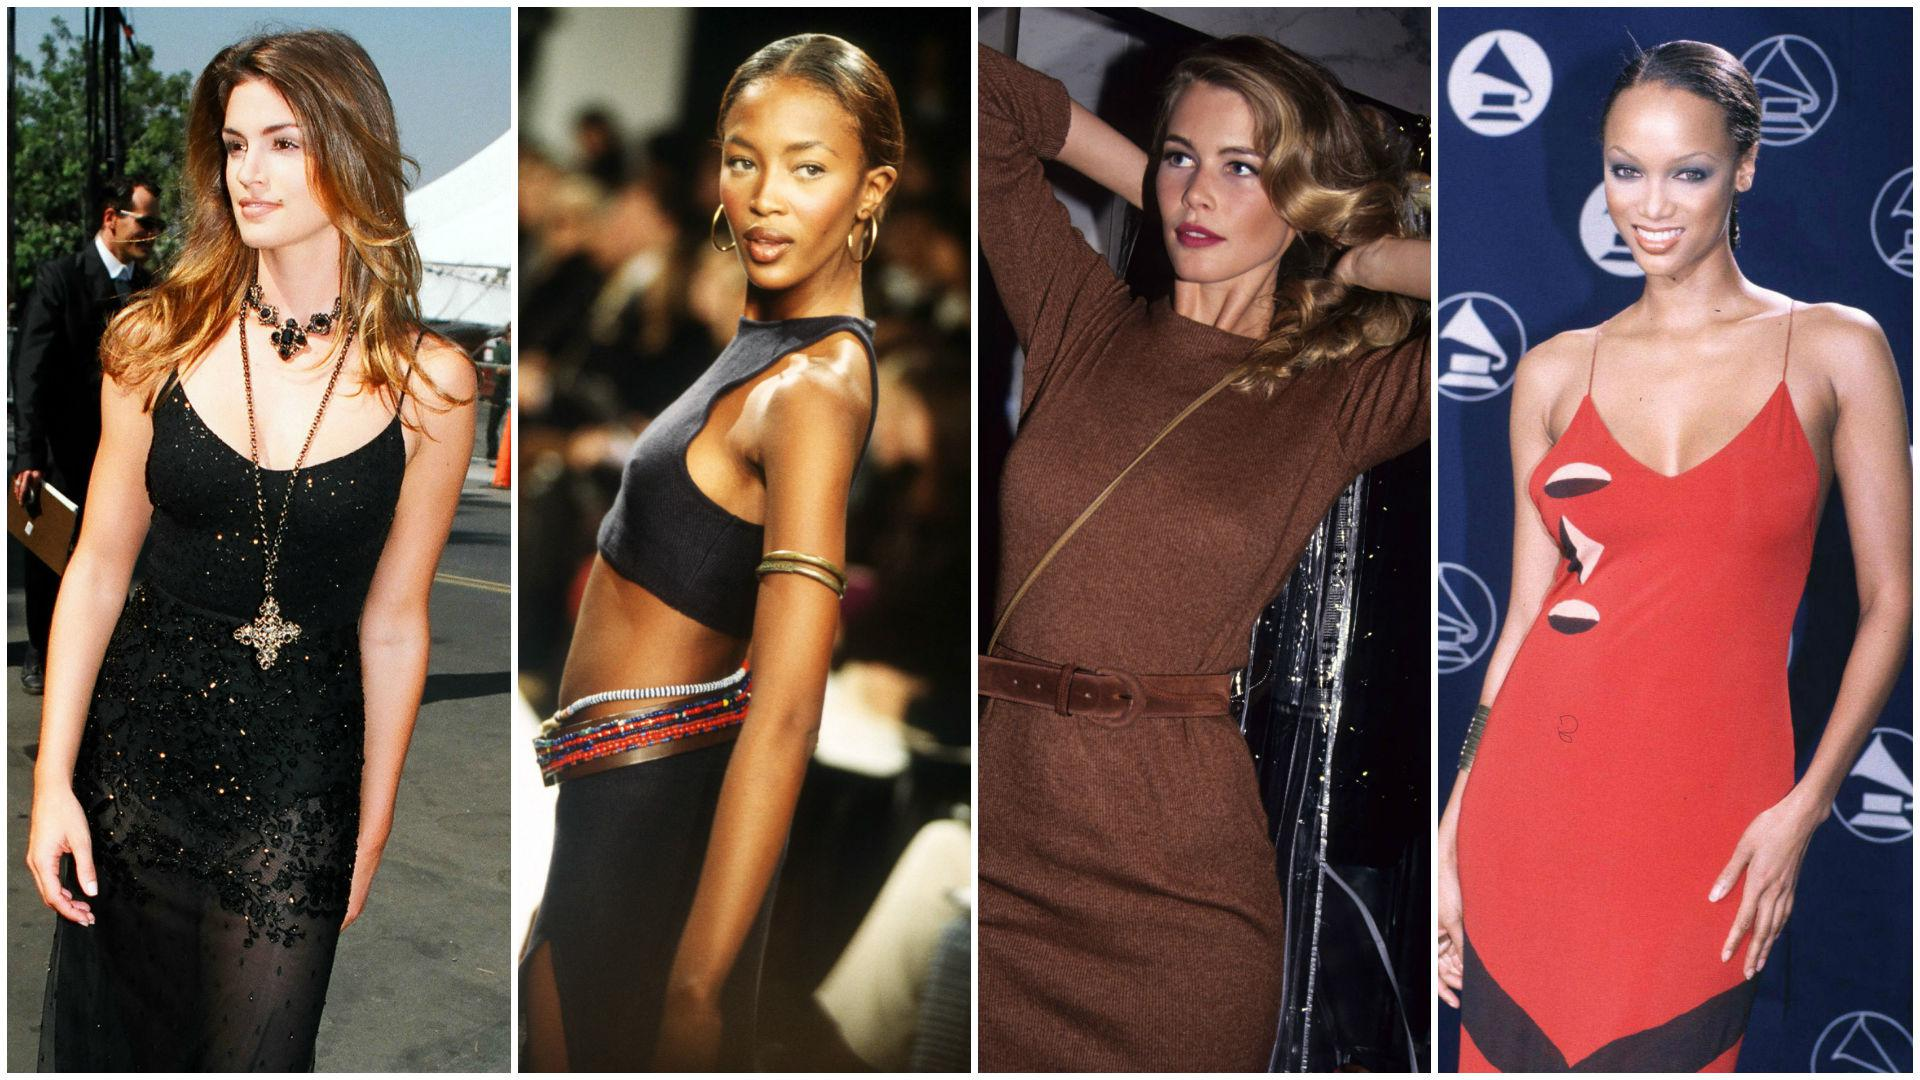 Dear 90s We Want Our Curvy Models Back Sheknows